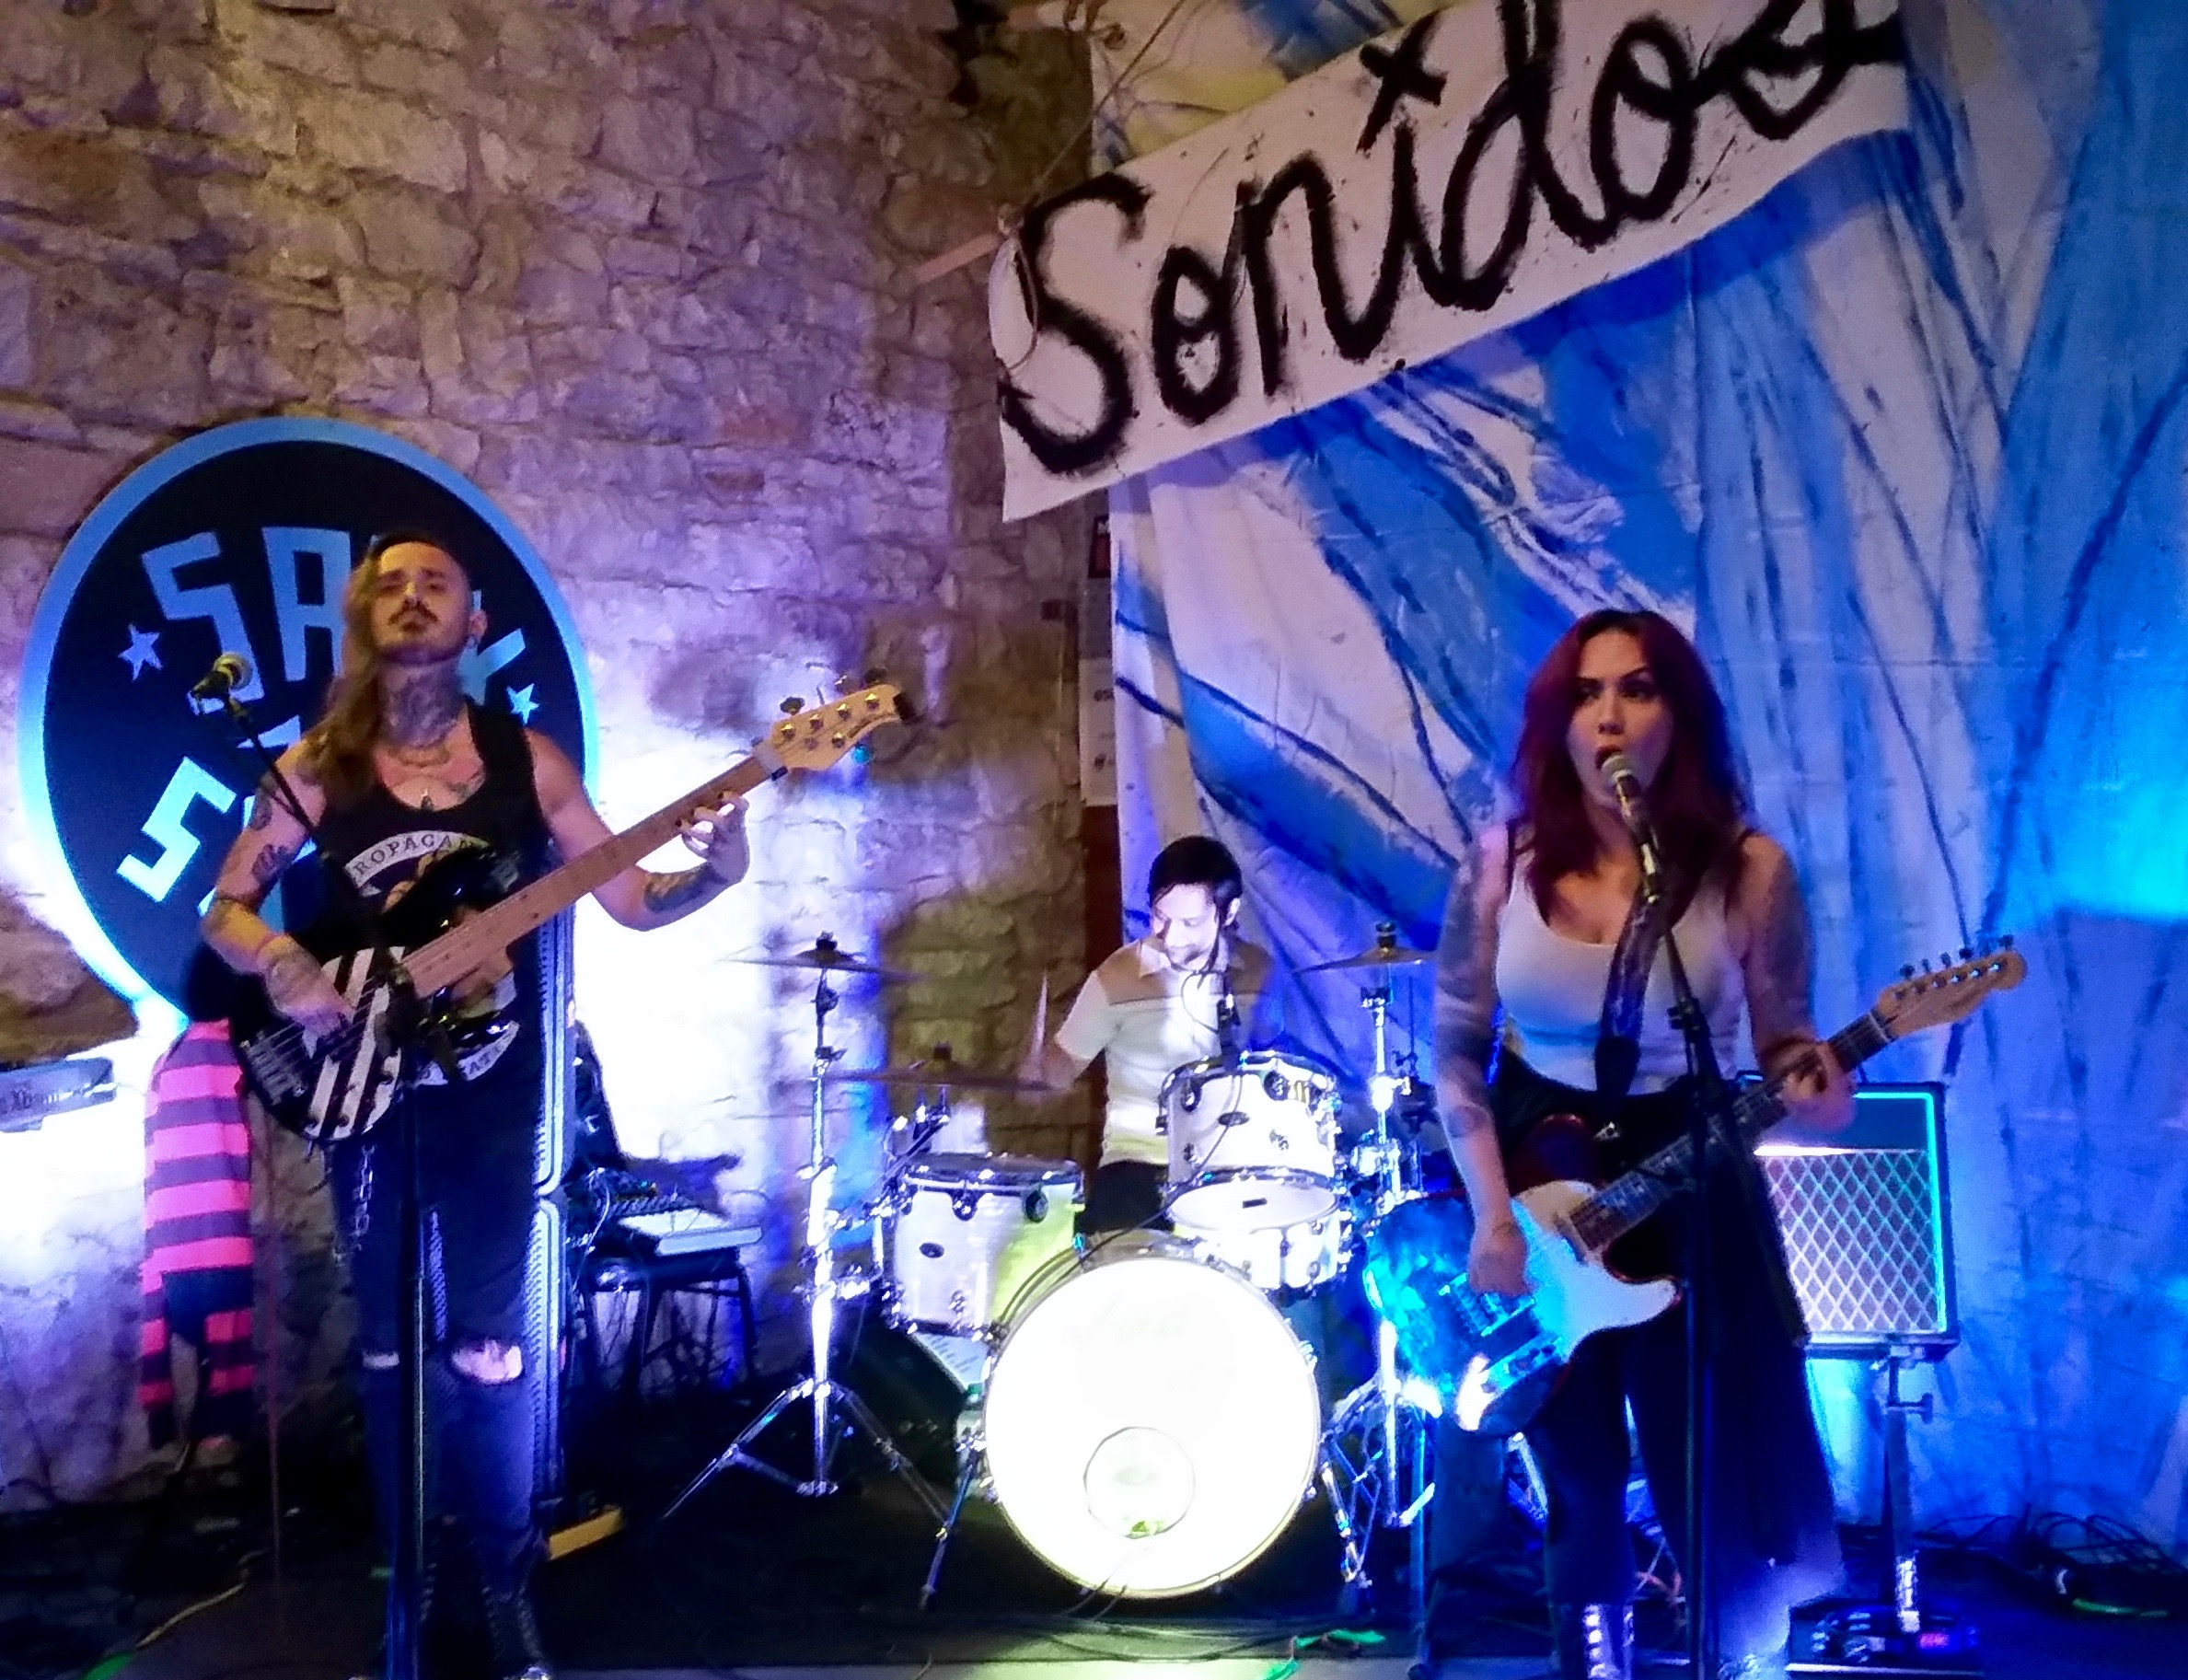 The Nina Diaz Band from San Antonio performs at the Life is Better in Texas party at Austin's Old School Bar and Grill on Saturday, March 12, 2016. Pearl sponsored the party. Photo by Edmond Ortiz